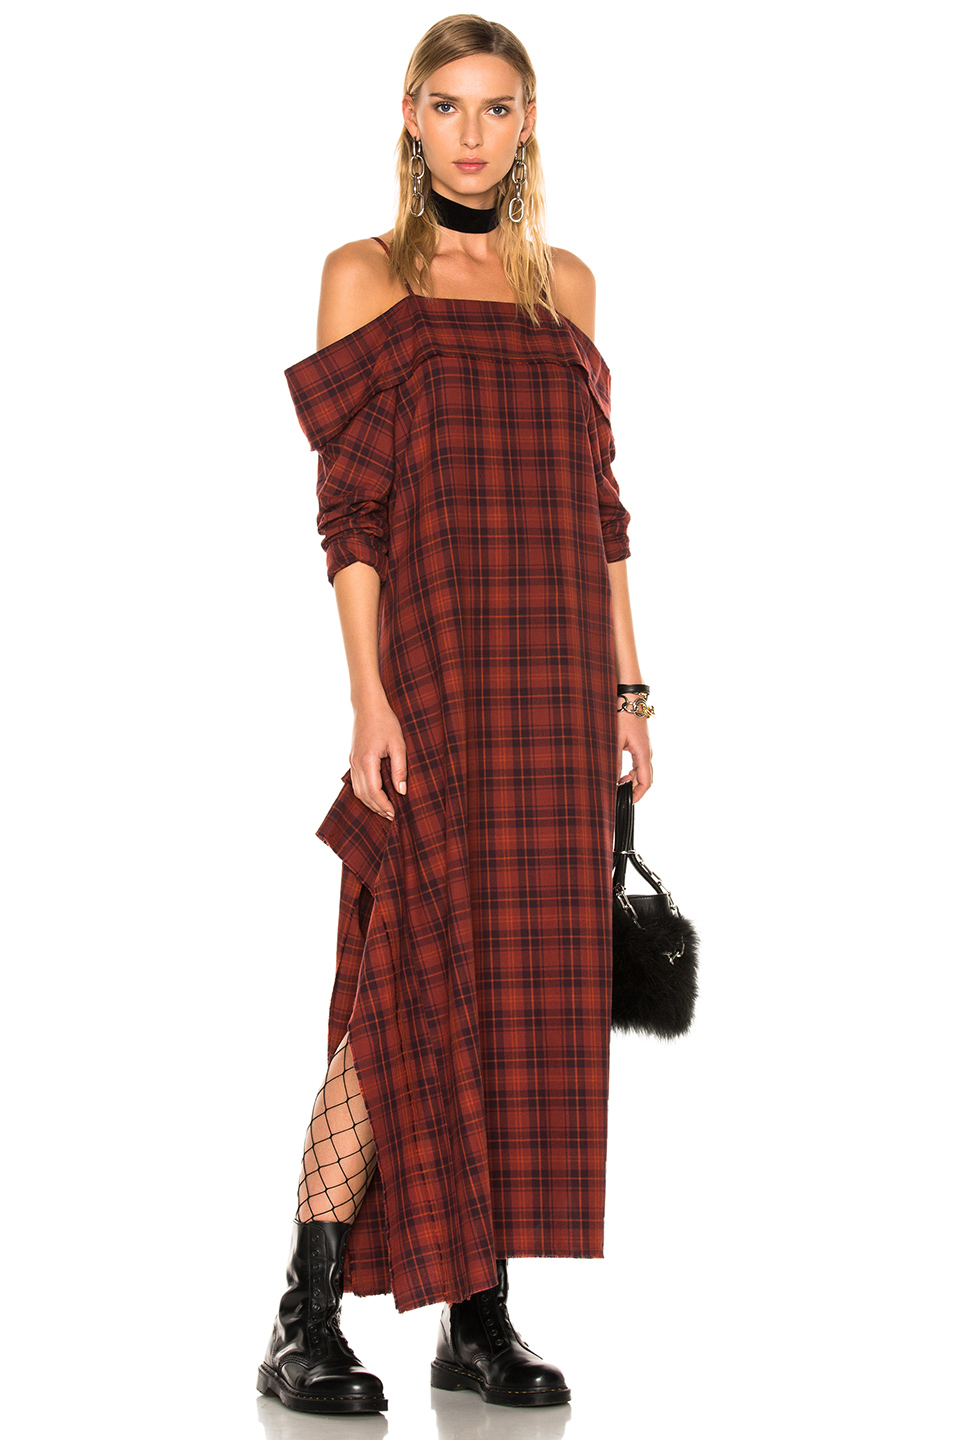 R13 for FWRD Exclusive Mini Apron Dress in Checkered & Plaid,Red